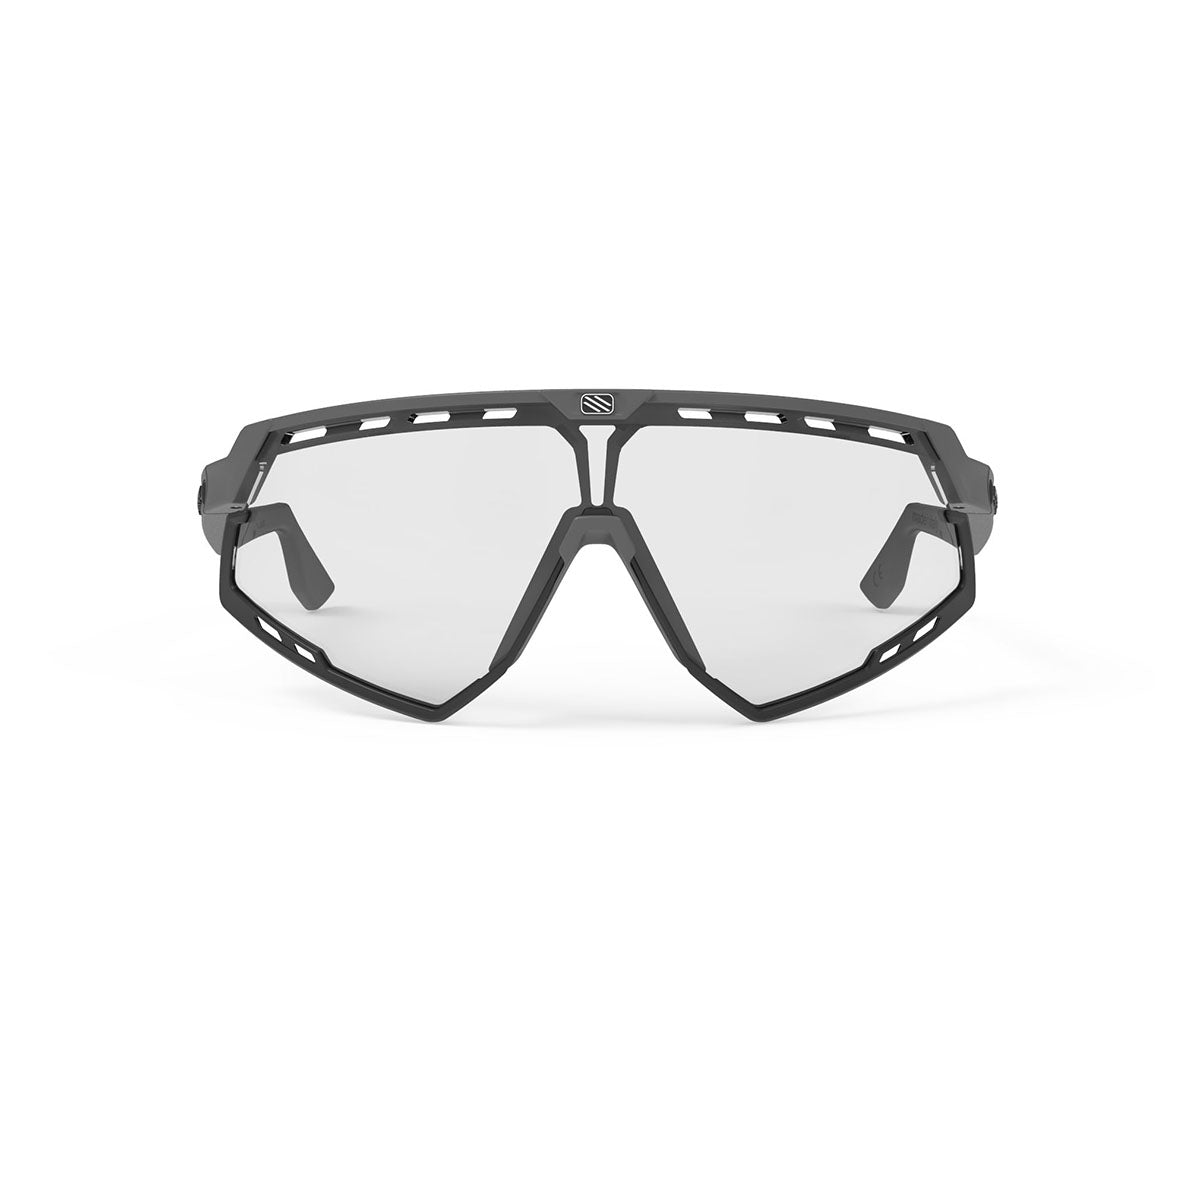 Rudy Project - Defender - frame color: Graphene - lens color: ImpactX-2 Photochromic clear to black - Bumper Color: Black - photo angle: Front View Variant Hover Image